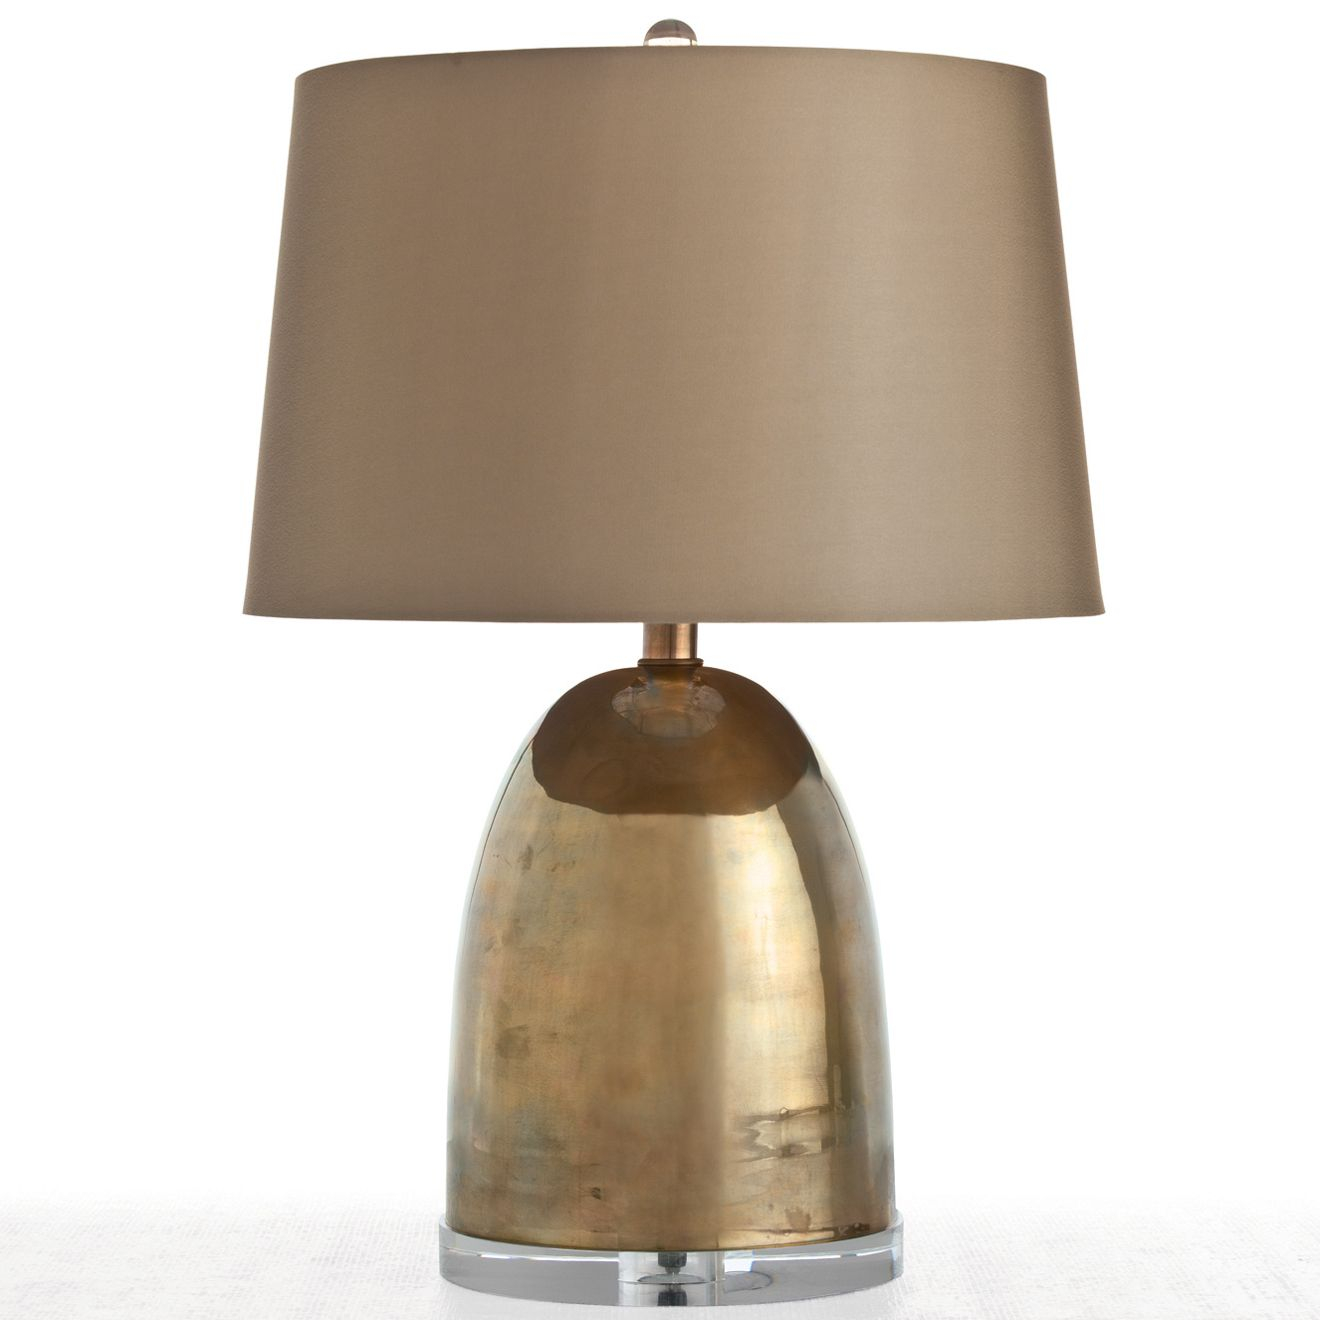 Arteriors Ryder Small Vintage Brass Table Lamp Ar46580147 intended for dimensions 1320 X 1320